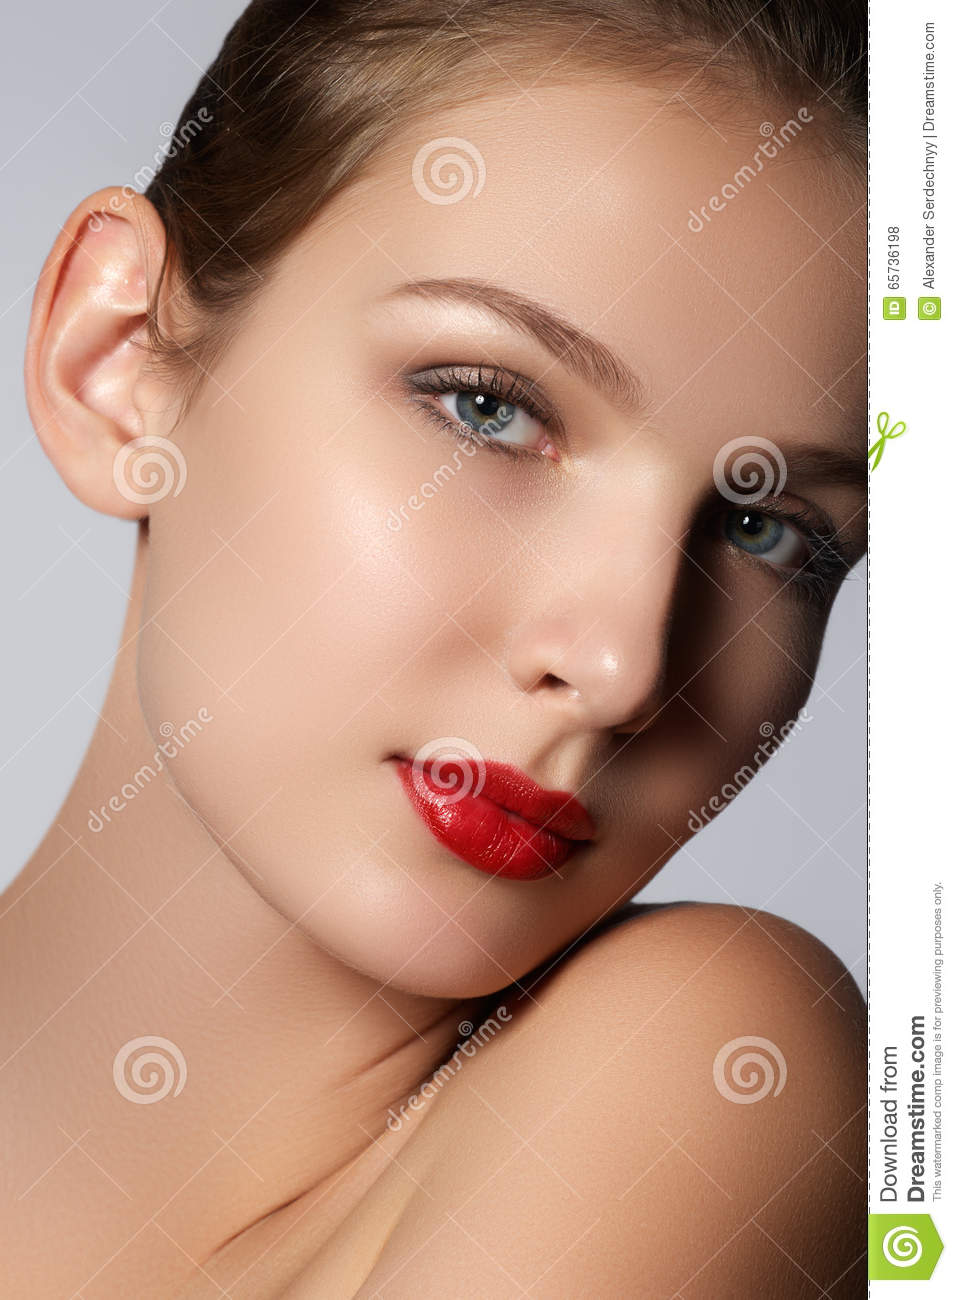 Beauty model girl with perfect make-up looking at camera isolated over white background. Portrait of attractive young woman